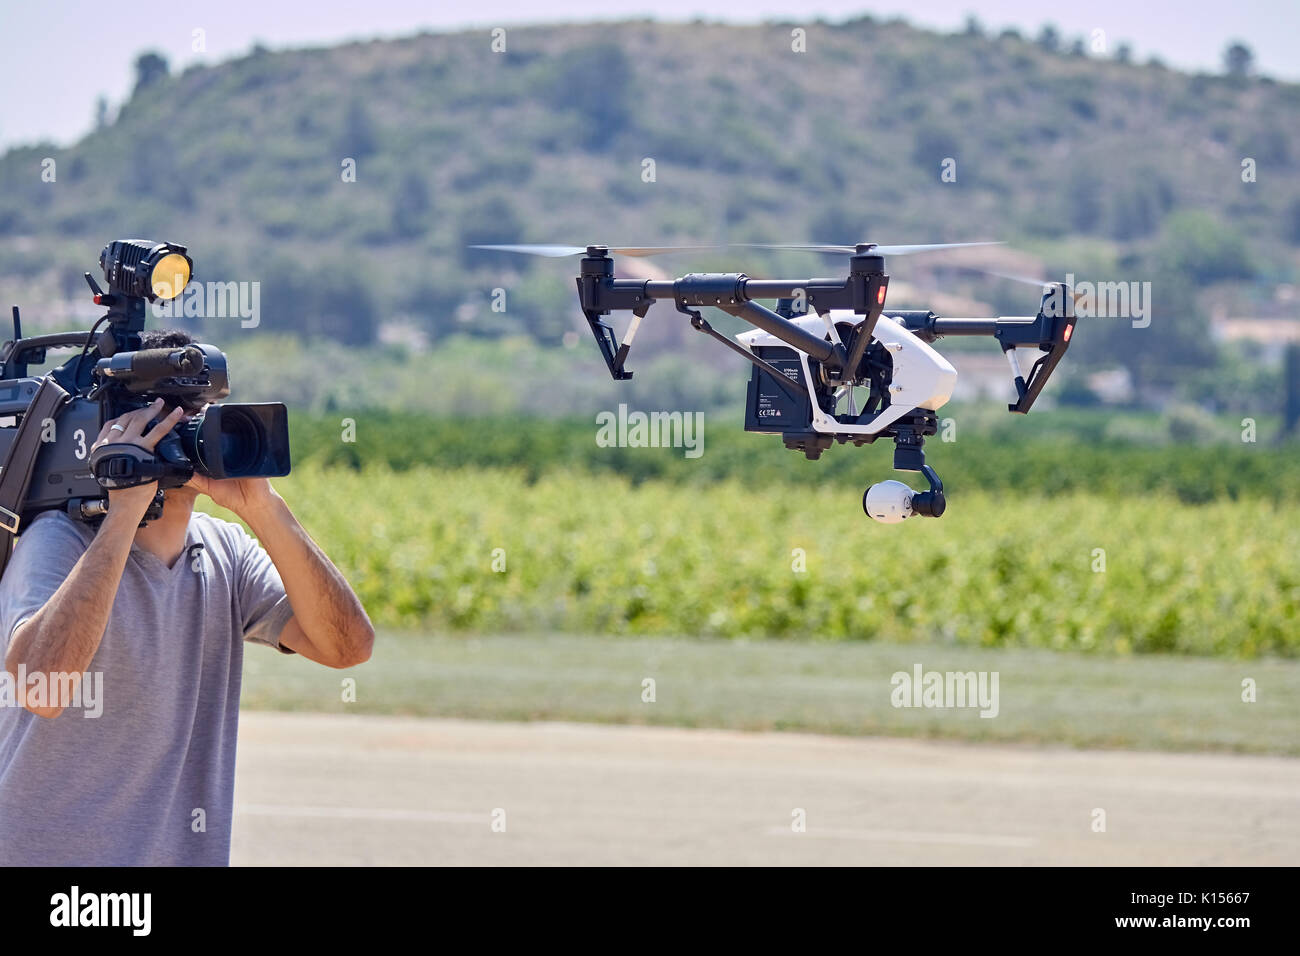 Cameraman filming drone in flght Stock Photo